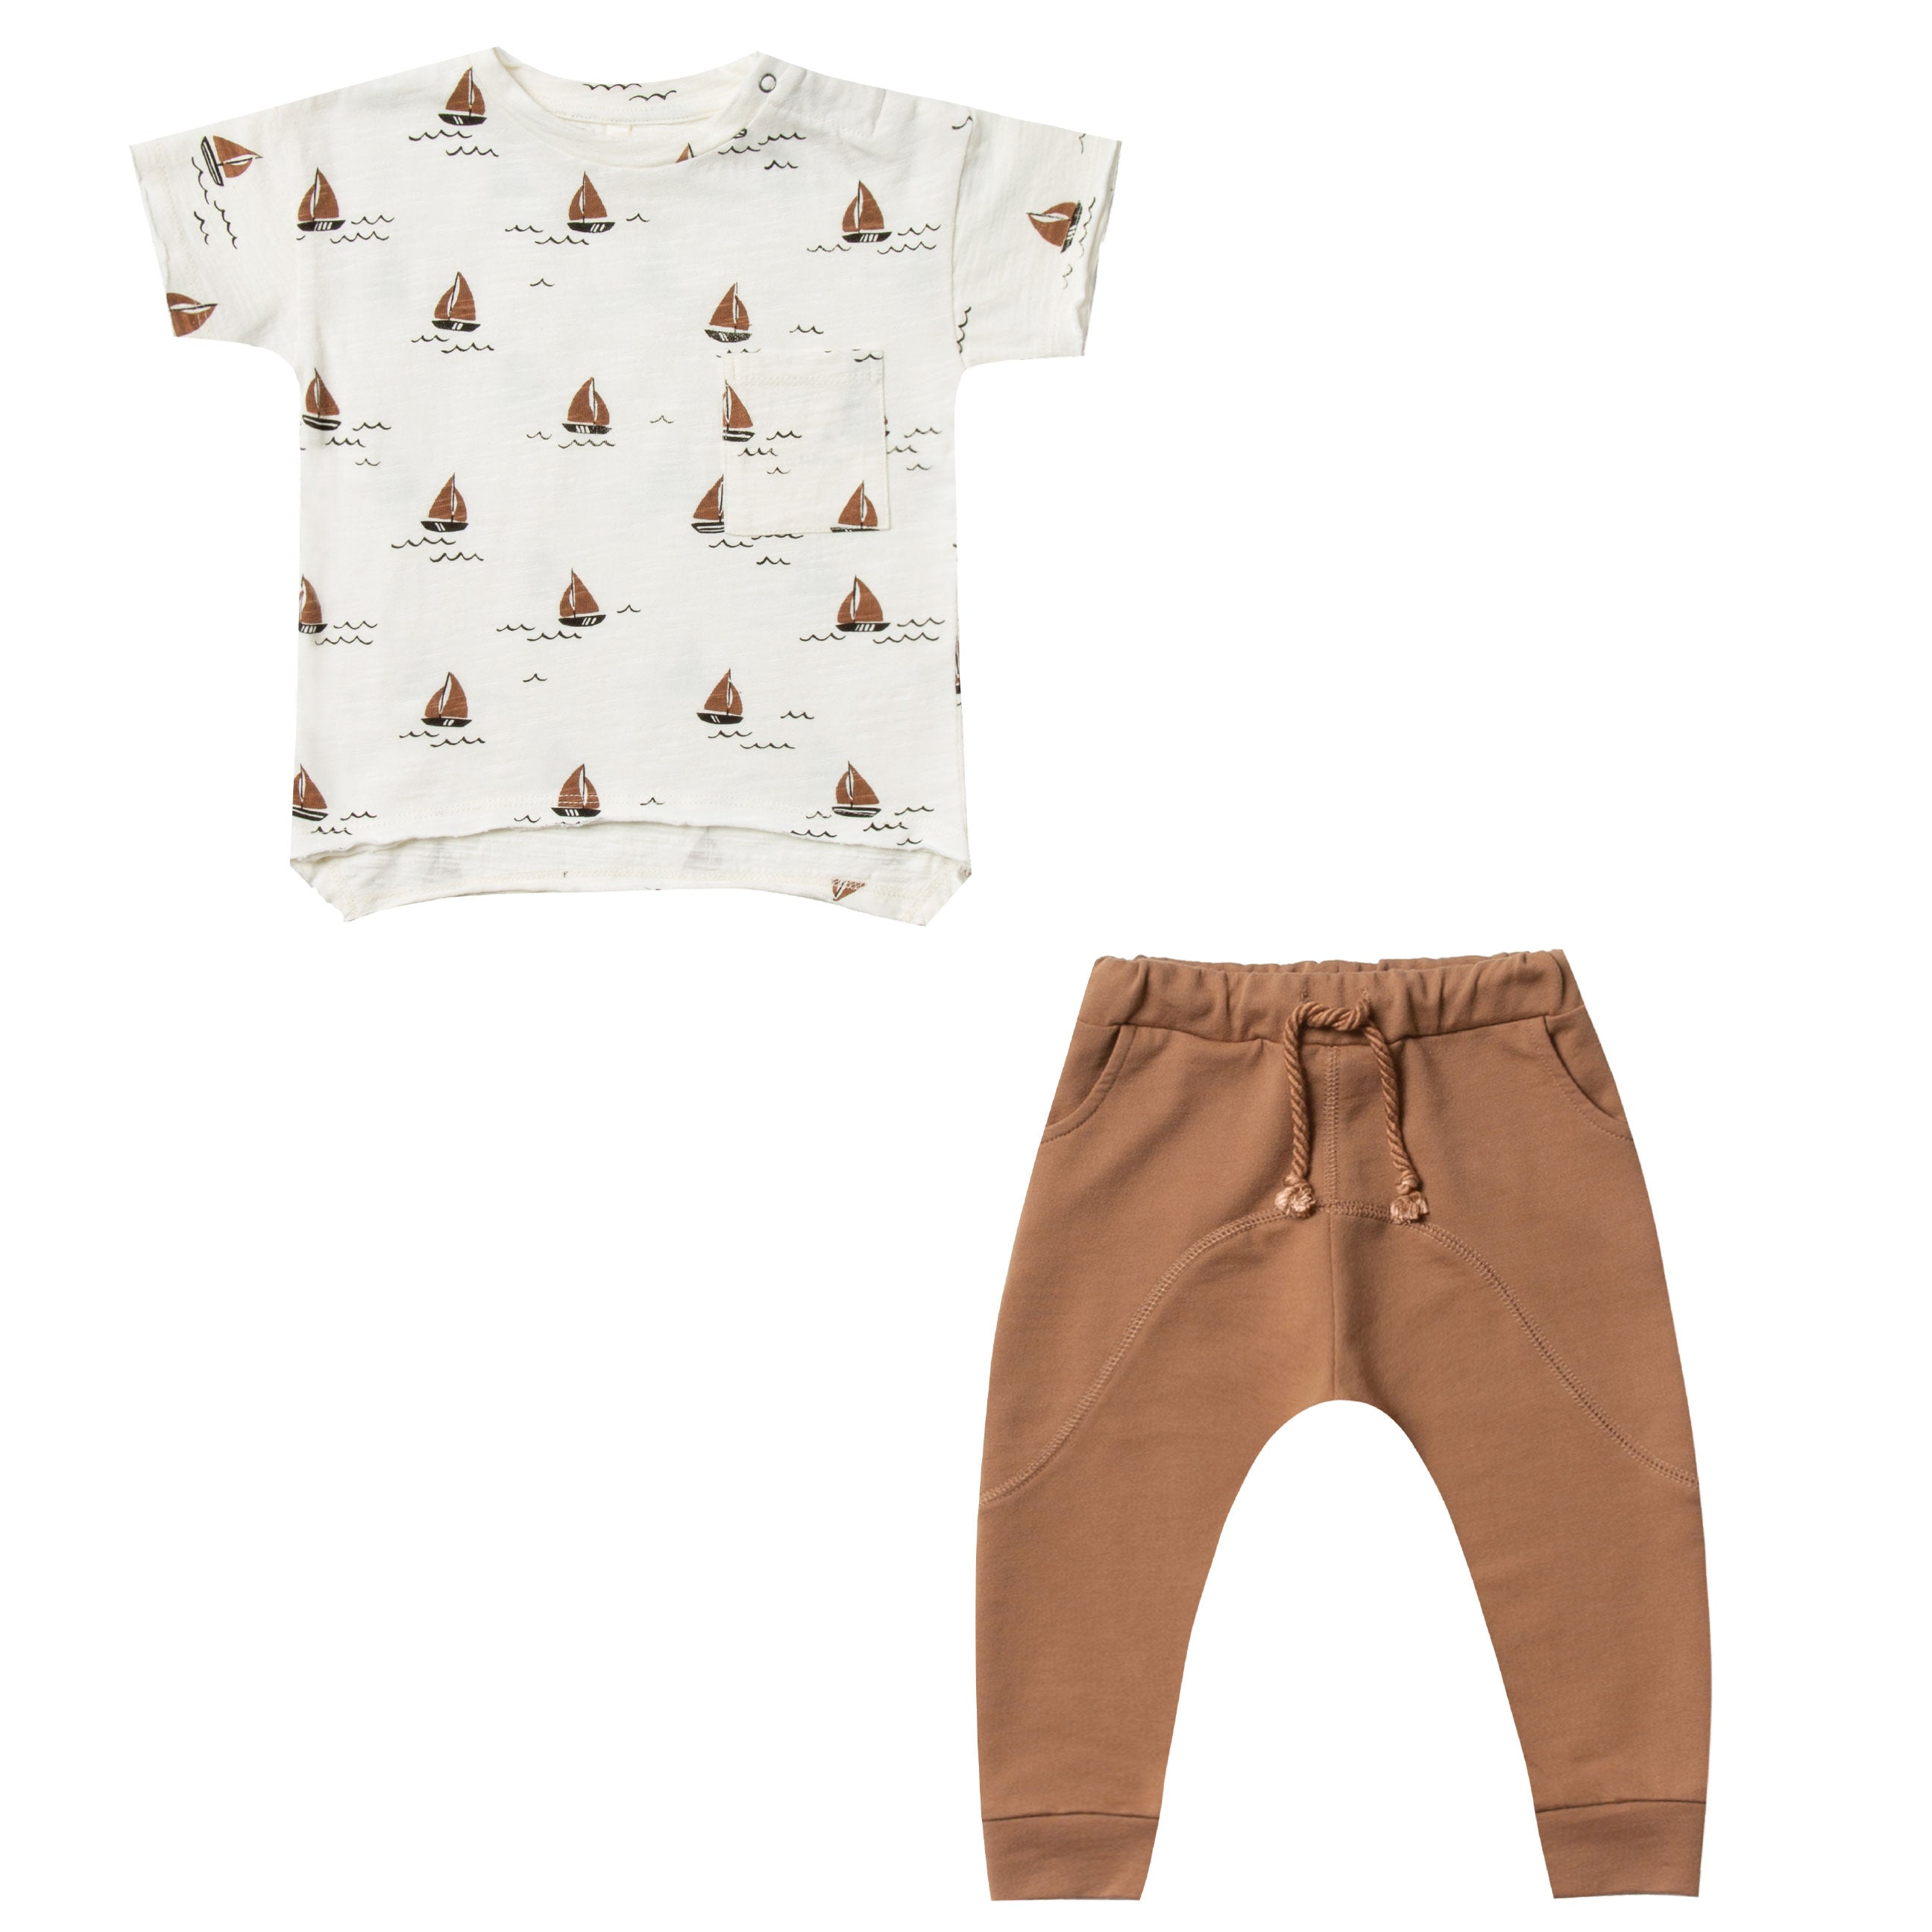 Rylee and Cru Baby tee with sailboats and slouchy pants at Bonjour Baby Baskets, Celebrity Baby Gifts